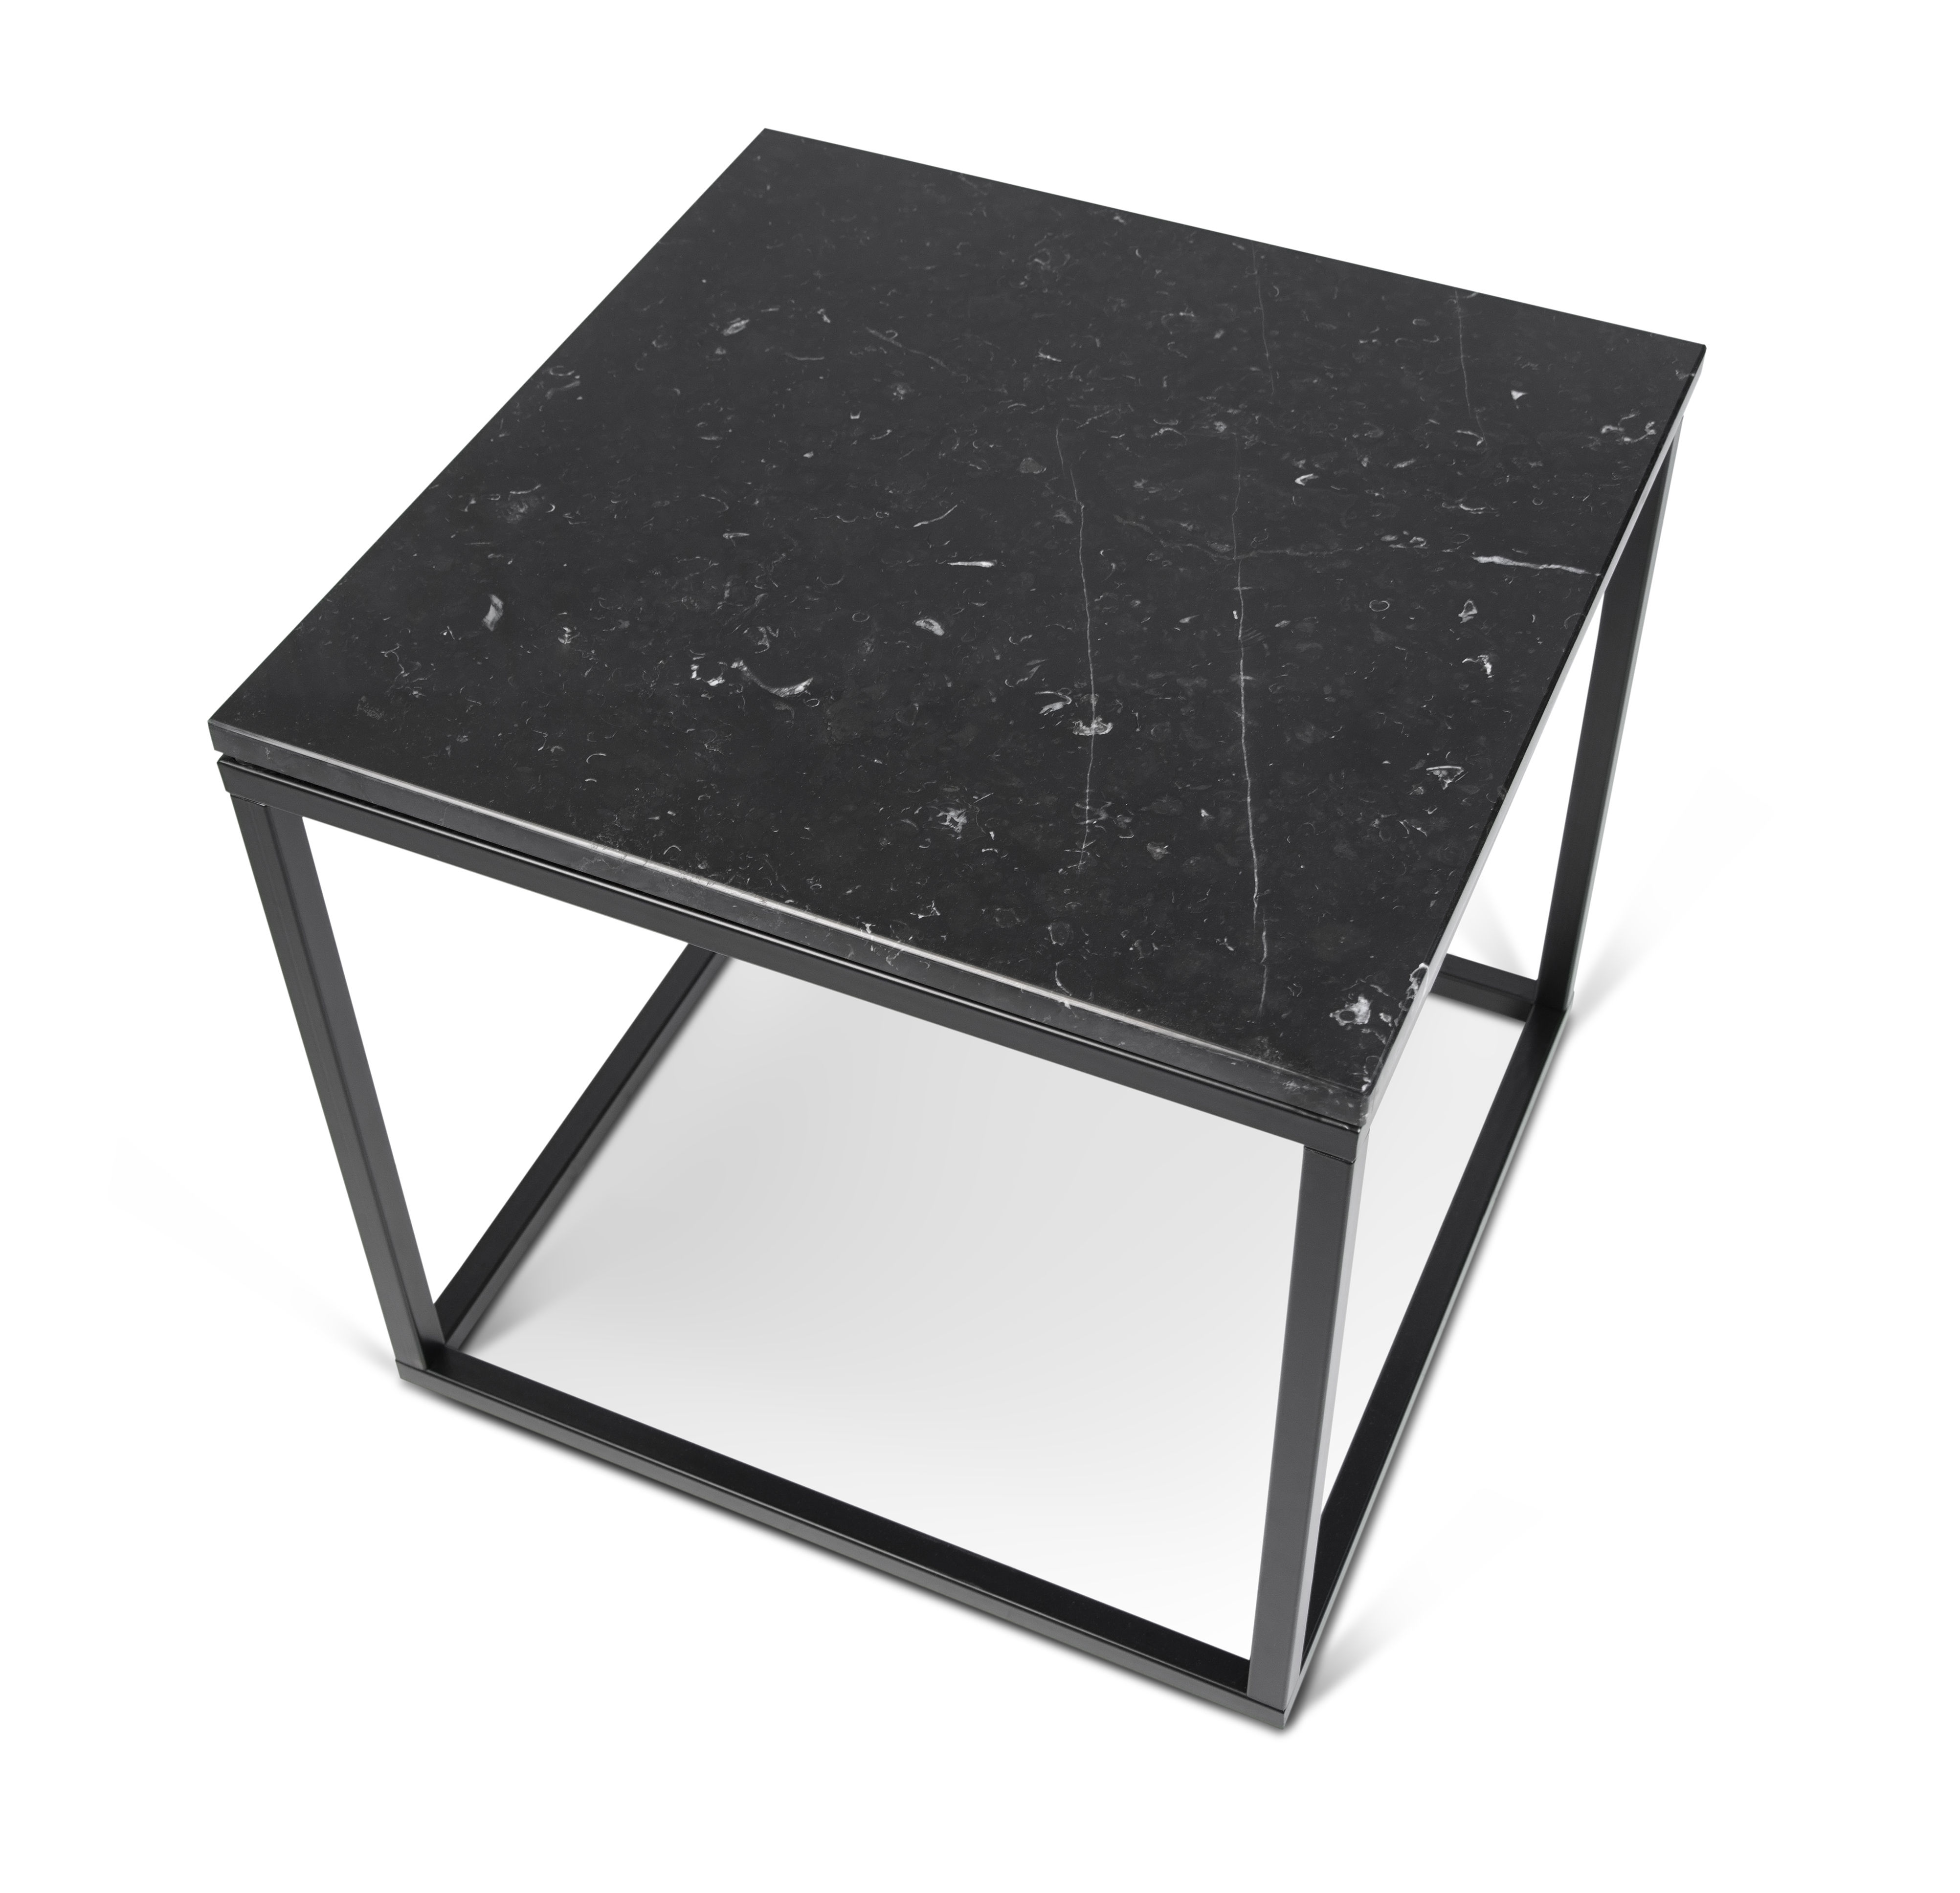 Marble coffee table marble 50 x 50cm black marble for Coffee tables 50cm wide